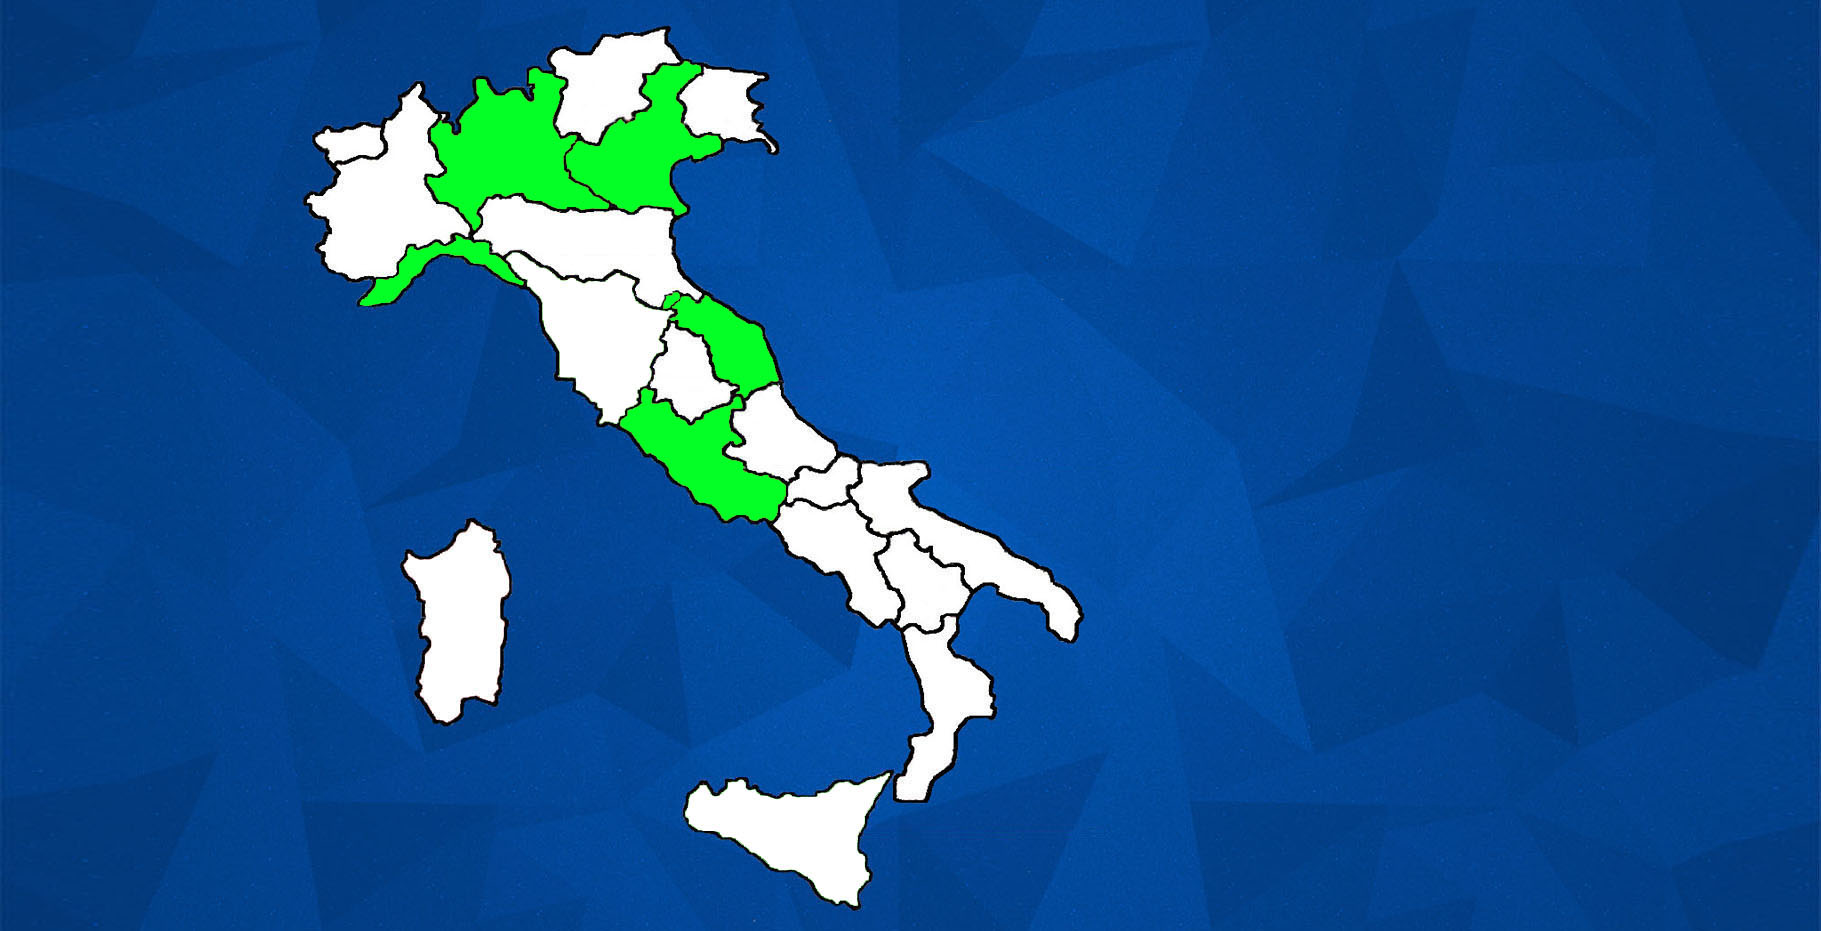 CIR JUNIOR ITALY MAP